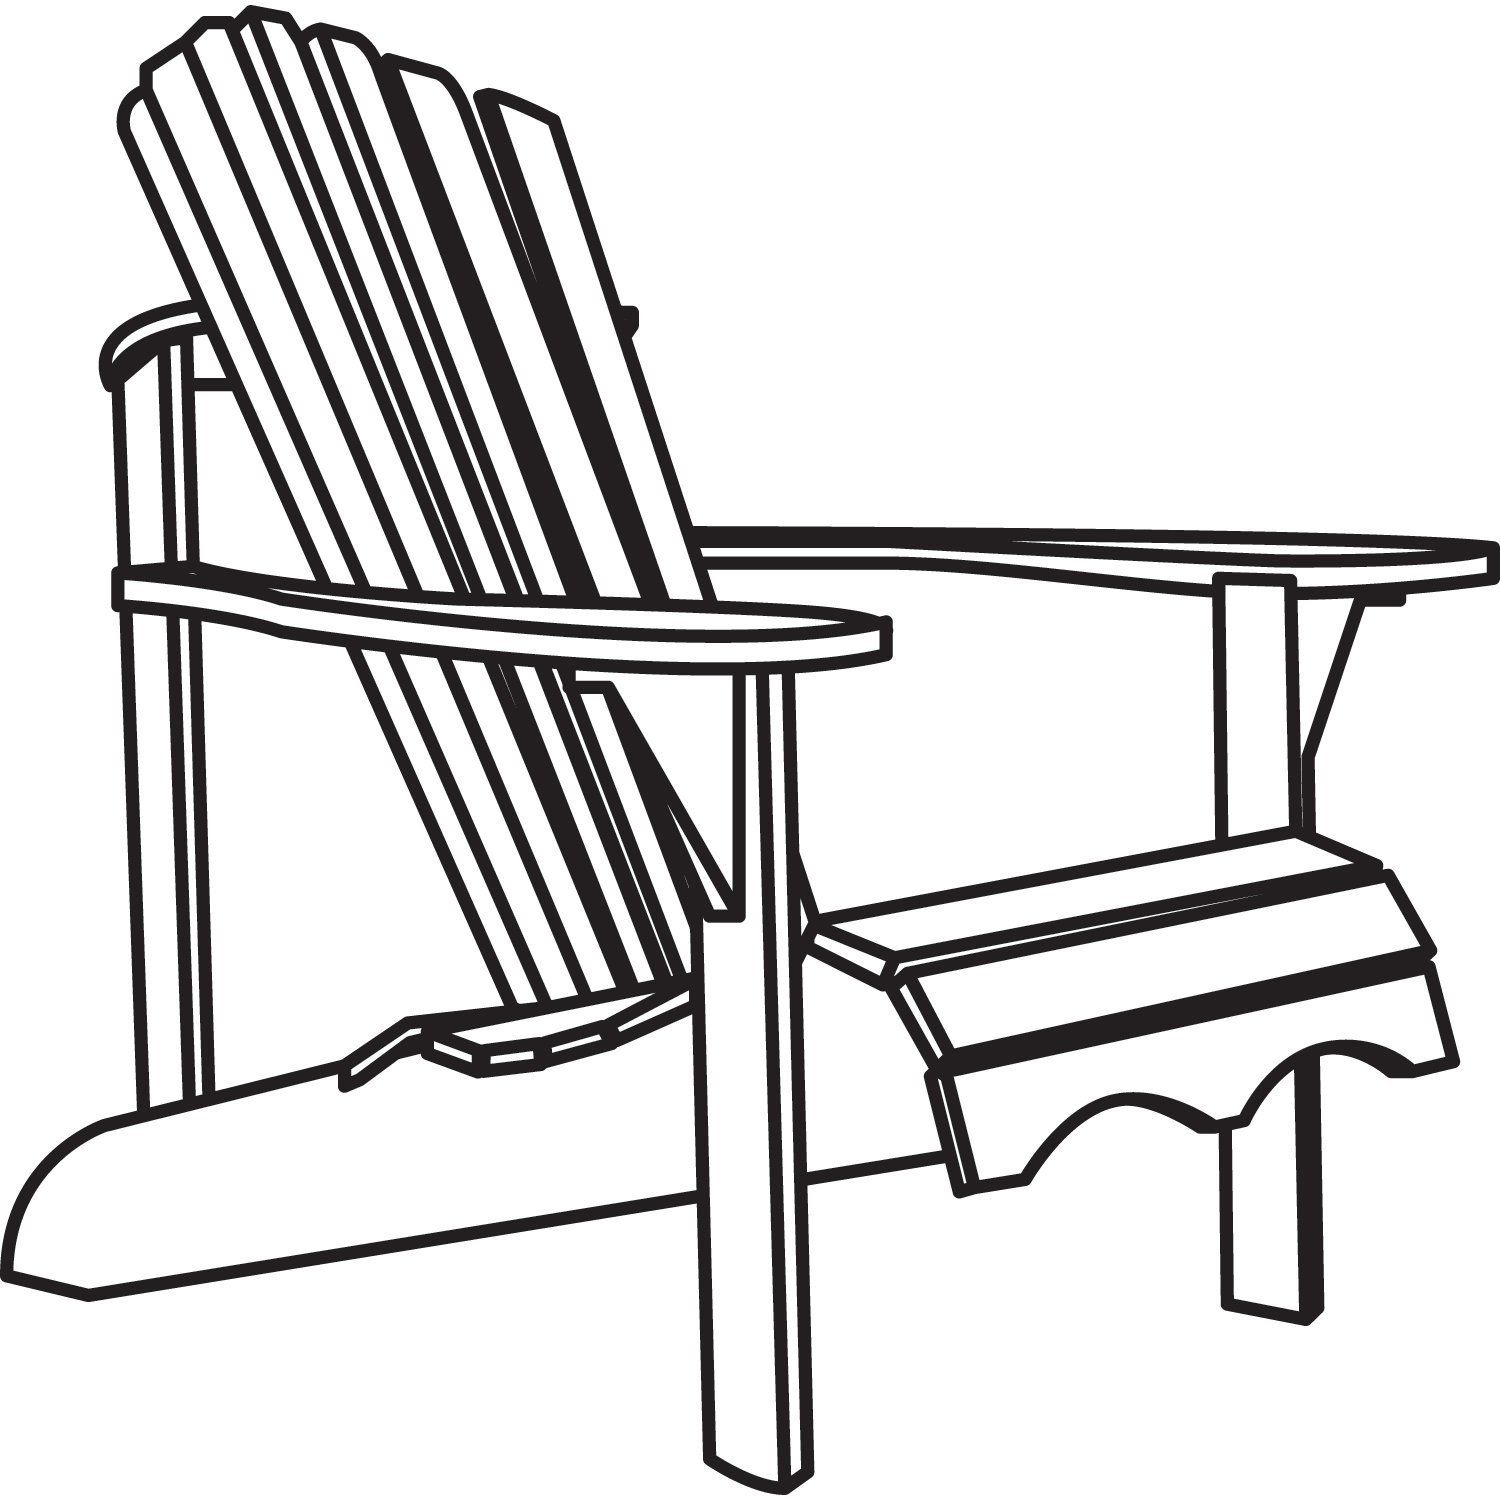 Black and white chair drawing - Classic Accessories Veranda Adirondack Chair Cover Waterproof New